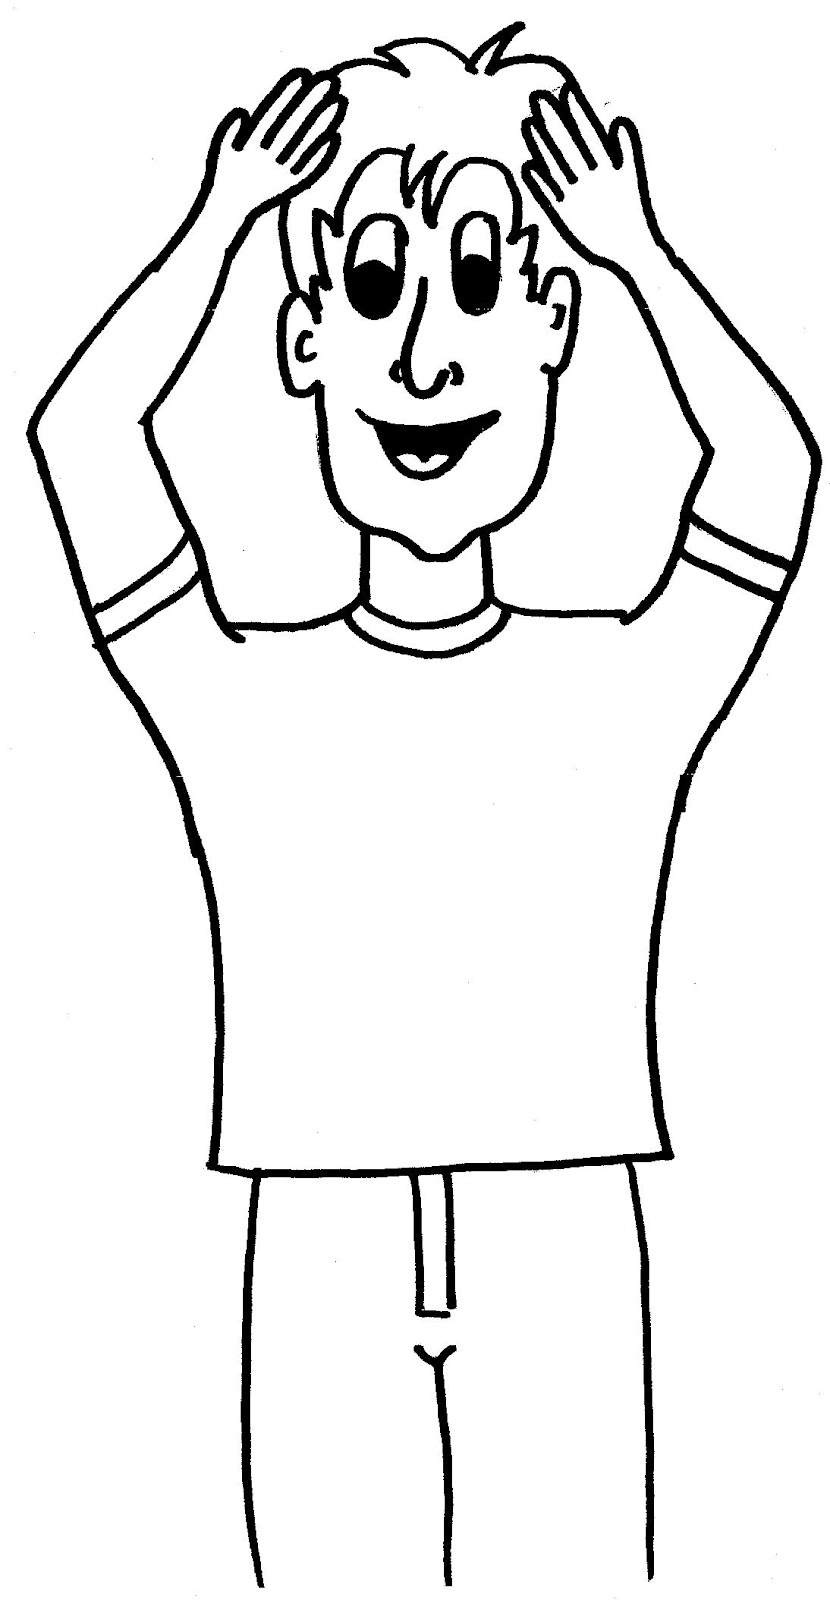 Clipart point to head black and white.